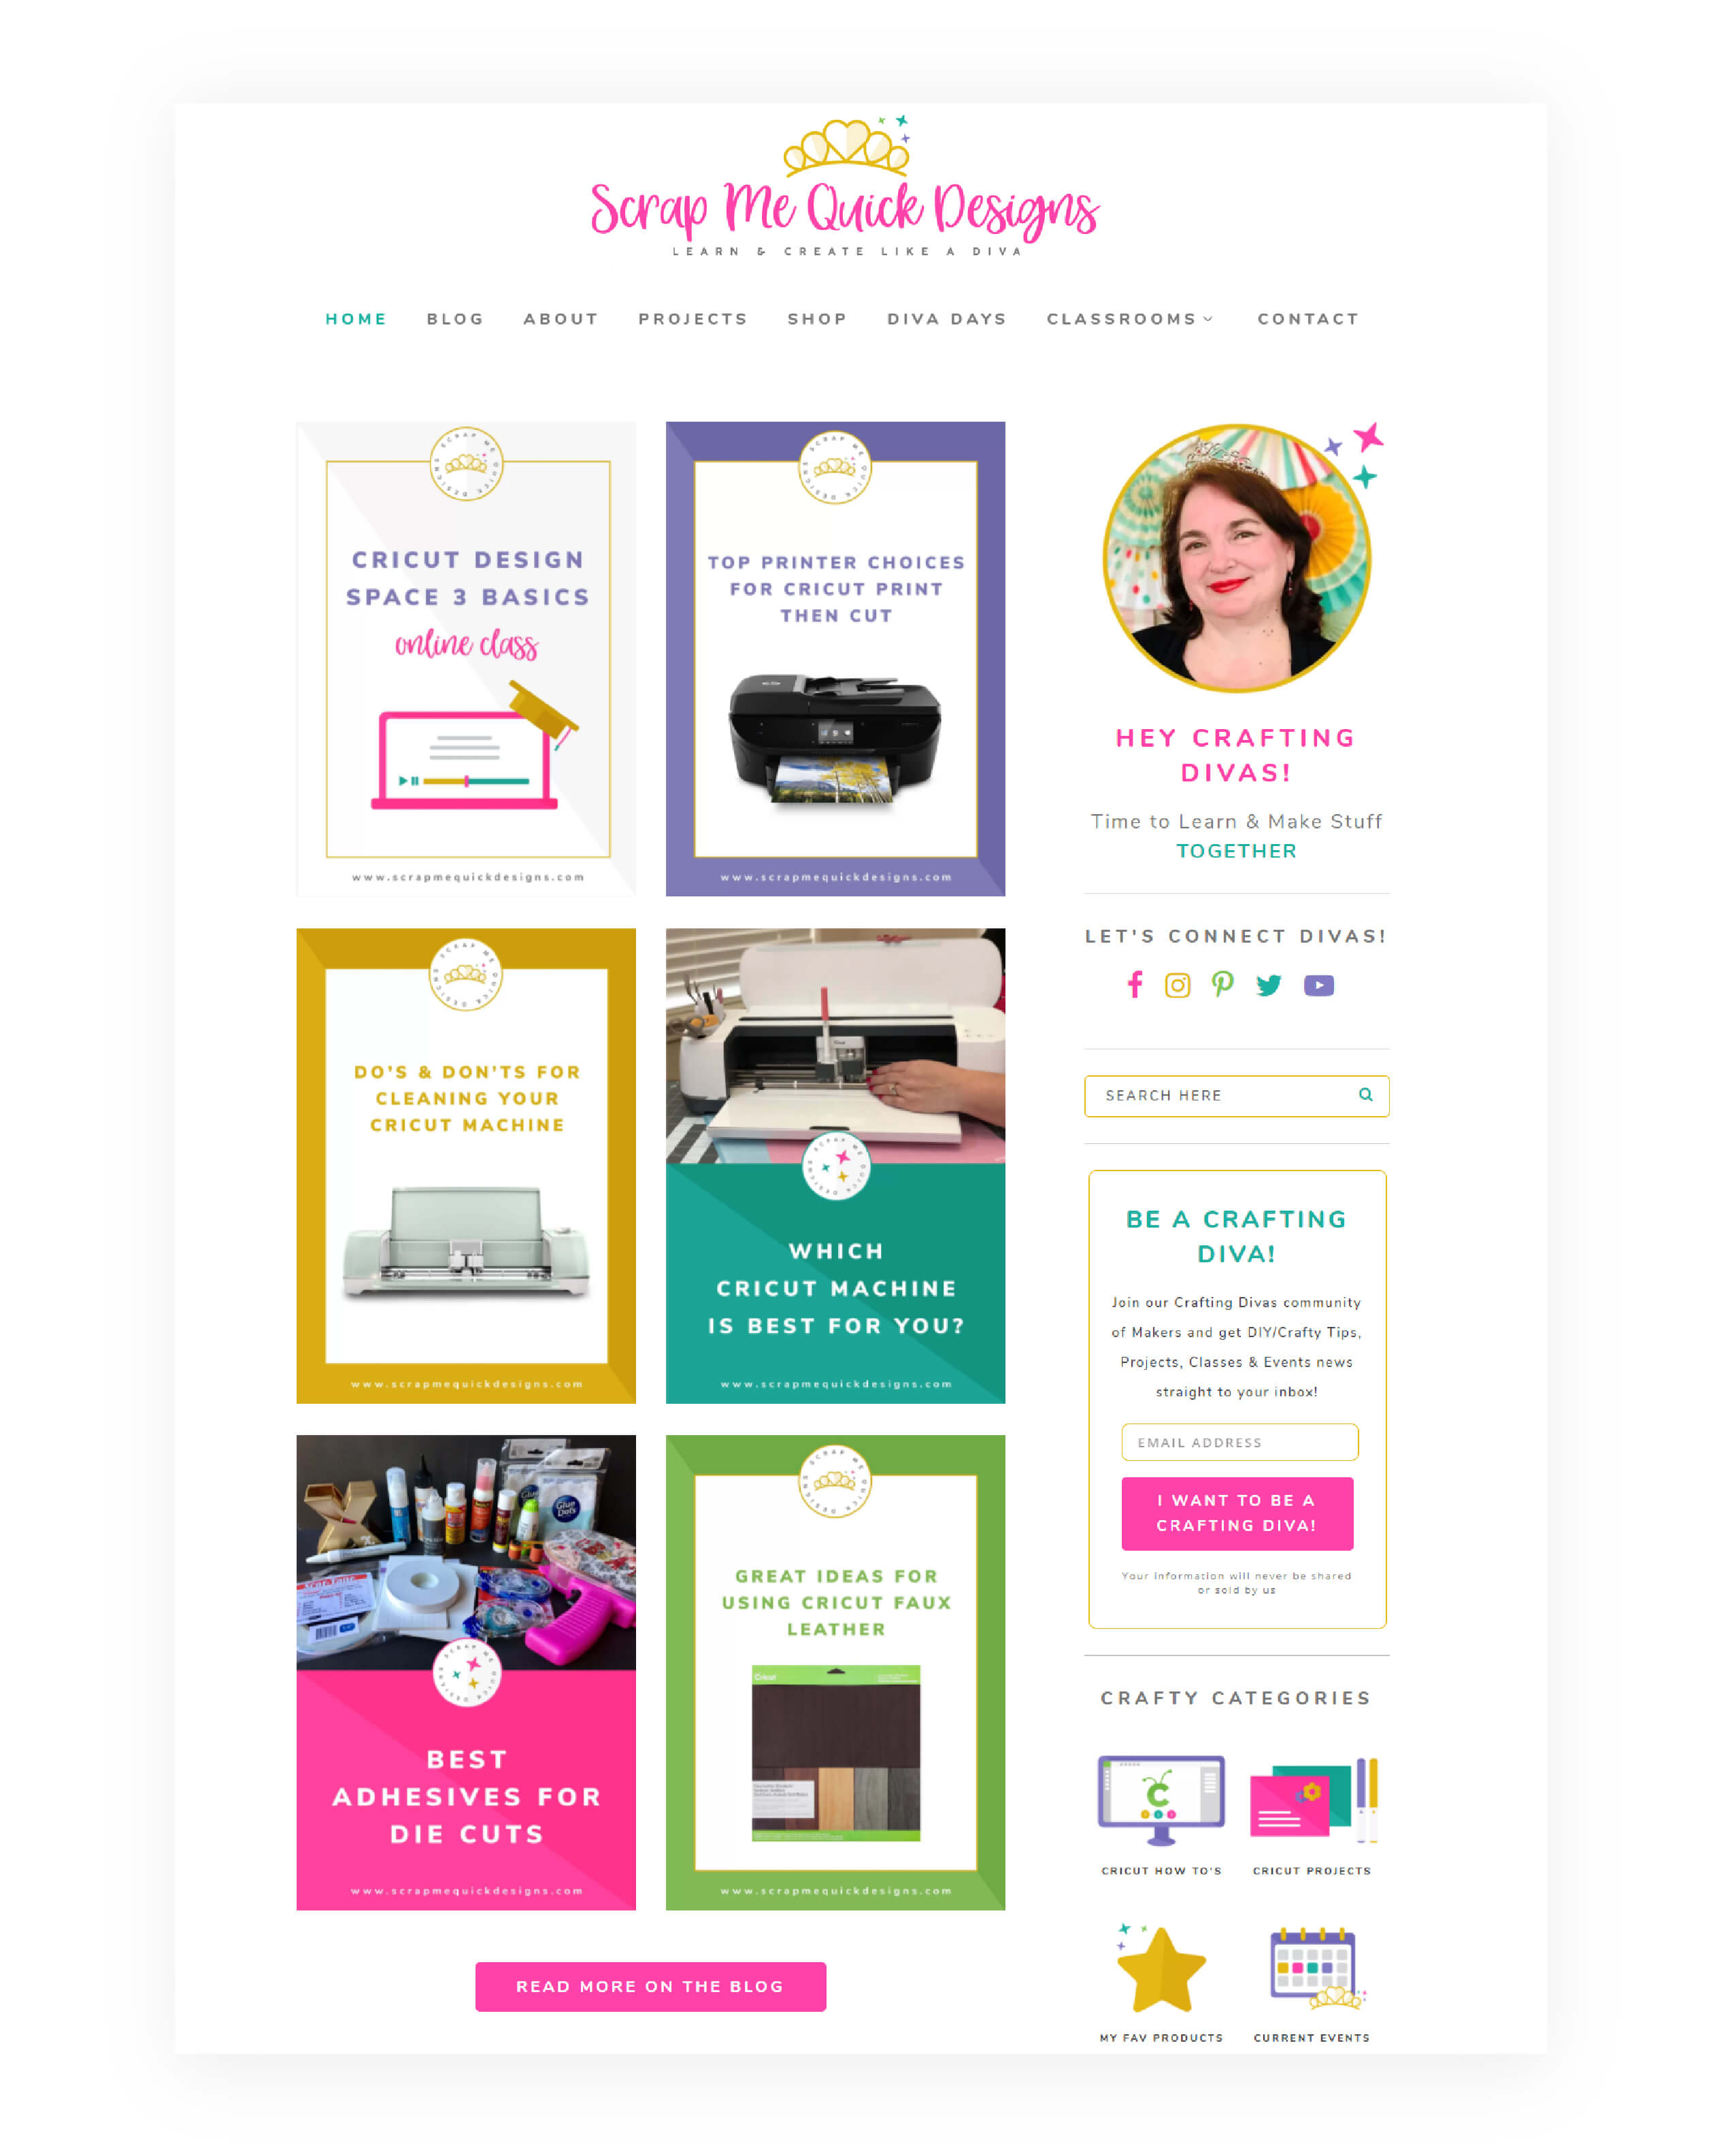 Brand & E-commerce + Membership Website Design for Scrap Me Quick Designs | Brand & Website Design | Brand & Web Design Package | WordPress Website Design | E-commerce Website | Membership Website | Brand Design | Brand Identity | Brand Board | Business Cards Design | Facebook Branding | Blog Categories Icons | Re-branding | Redesign | Blog post graphics templates | Brand Collaterals Design | Website Design | Logo Design | MintSwift | MintSwift Portfolio | MintSwift Design | Adrianna Glowacka